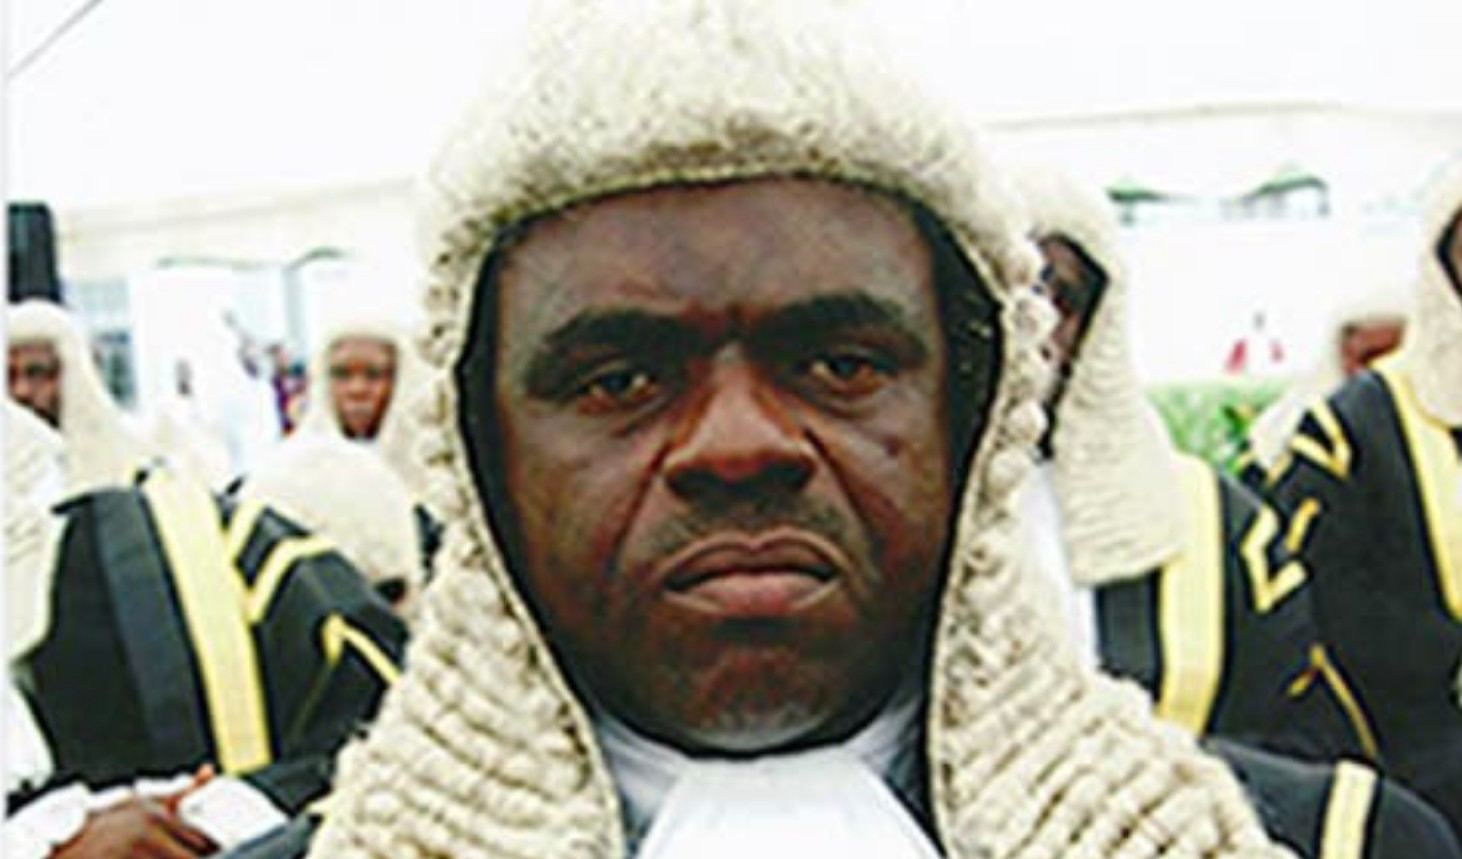 COVID-19: Federal High Court Chief Judge, Tsoho Goes On Self-Isolation